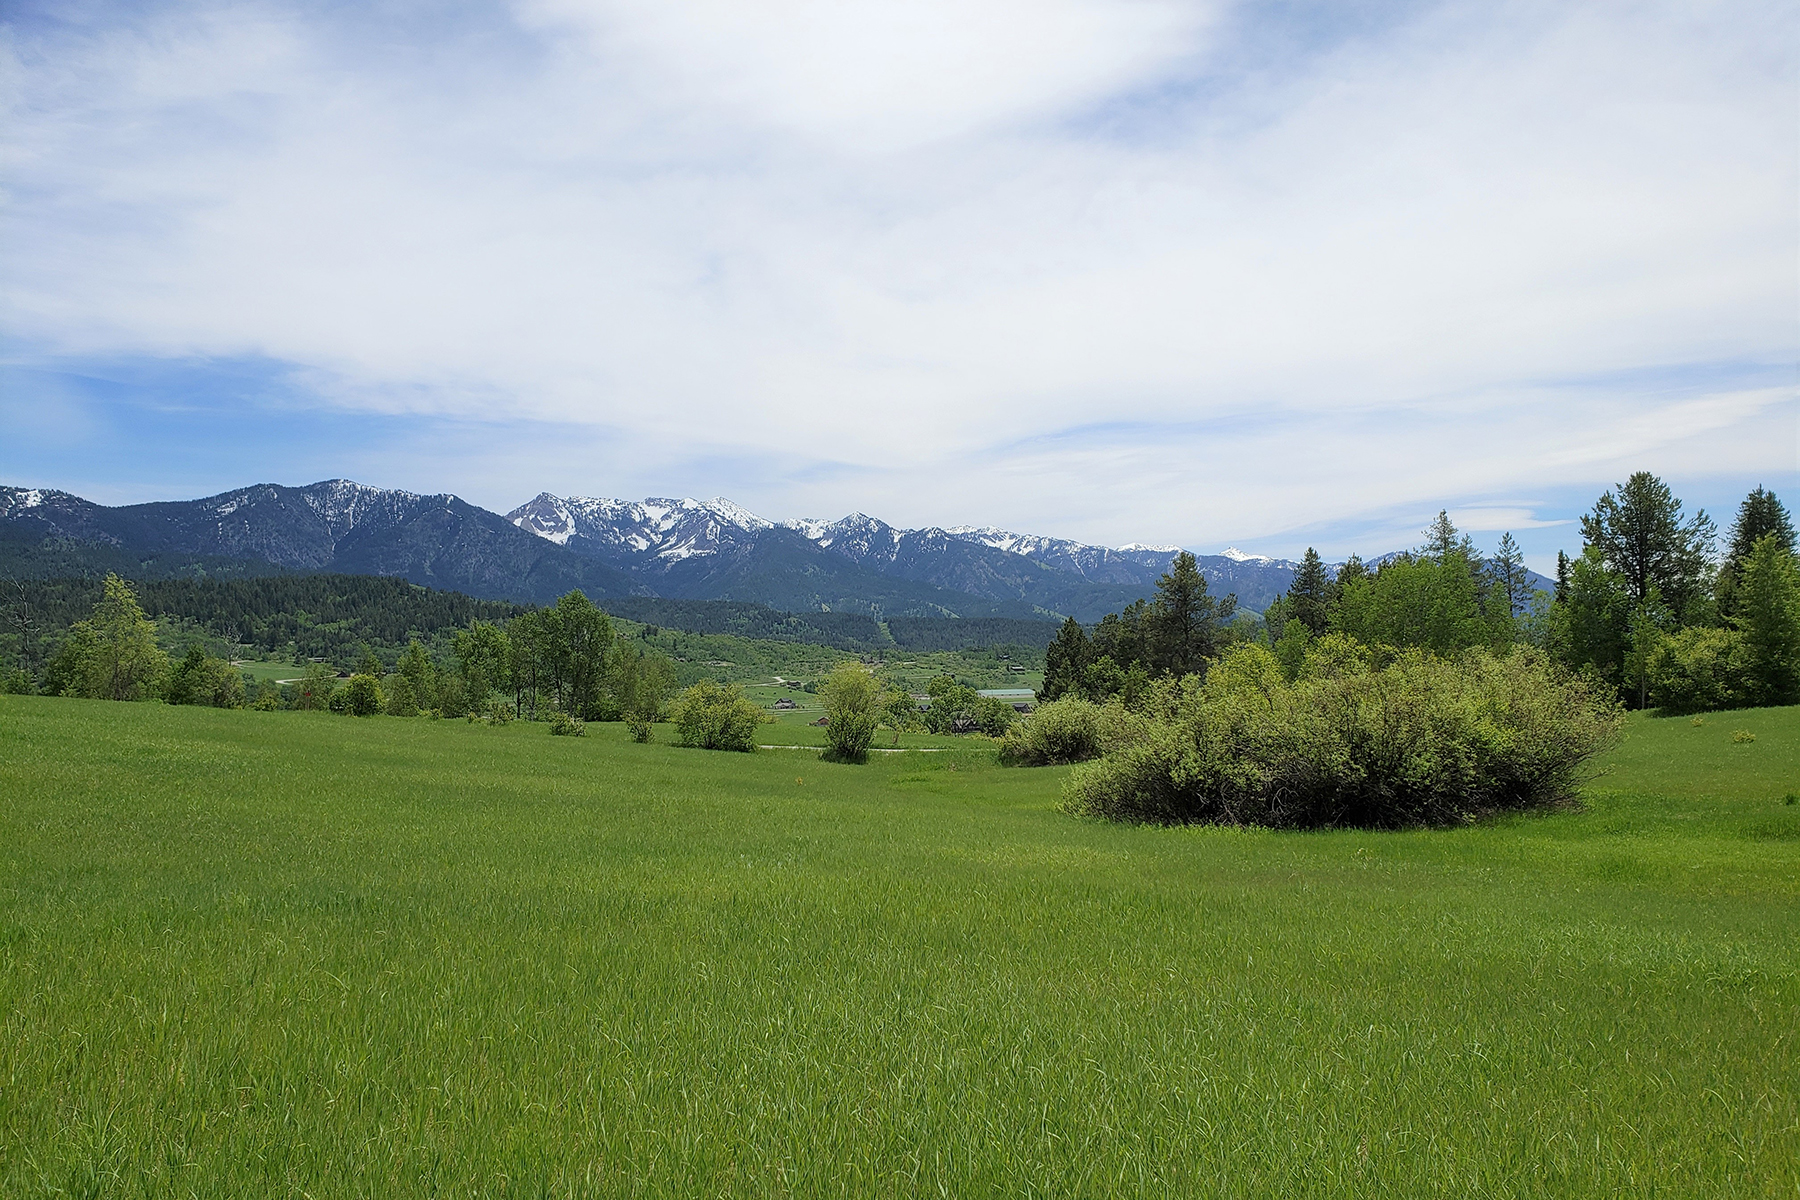 Land for Sale at Alpine, WY view lot with mountain views LOT 3 ALPINE RETREAT 2 Alpine, Wyoming 83128 United States